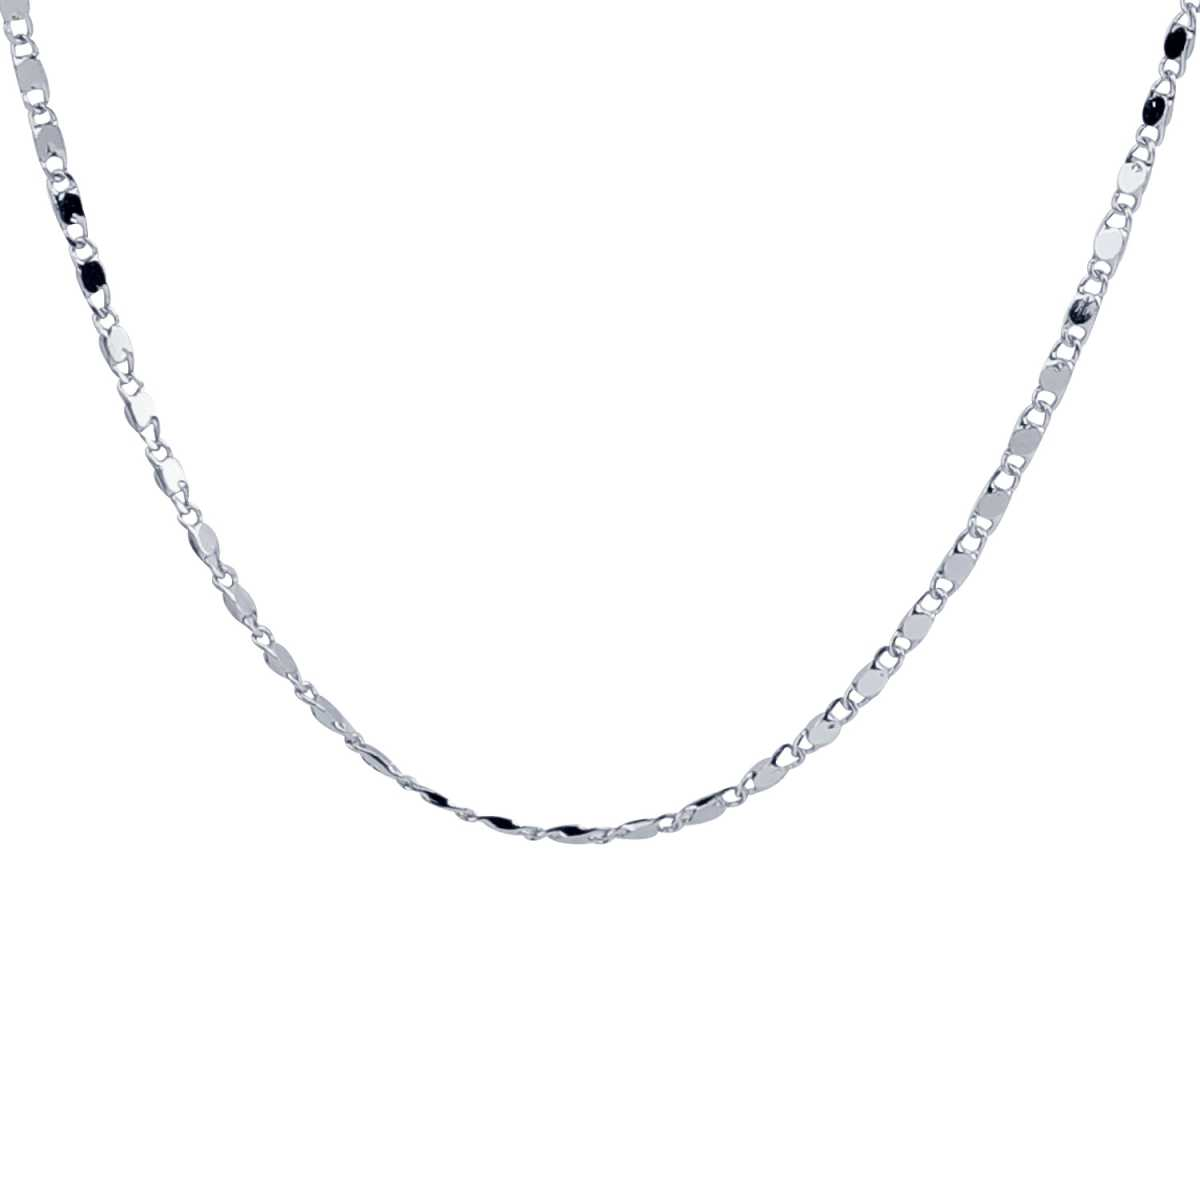 Silver Shine Ethnic Silver Plated Simple Design Chain Of 17 Inch Daily Wear Jewellry For Girls/Boys/Men/Women